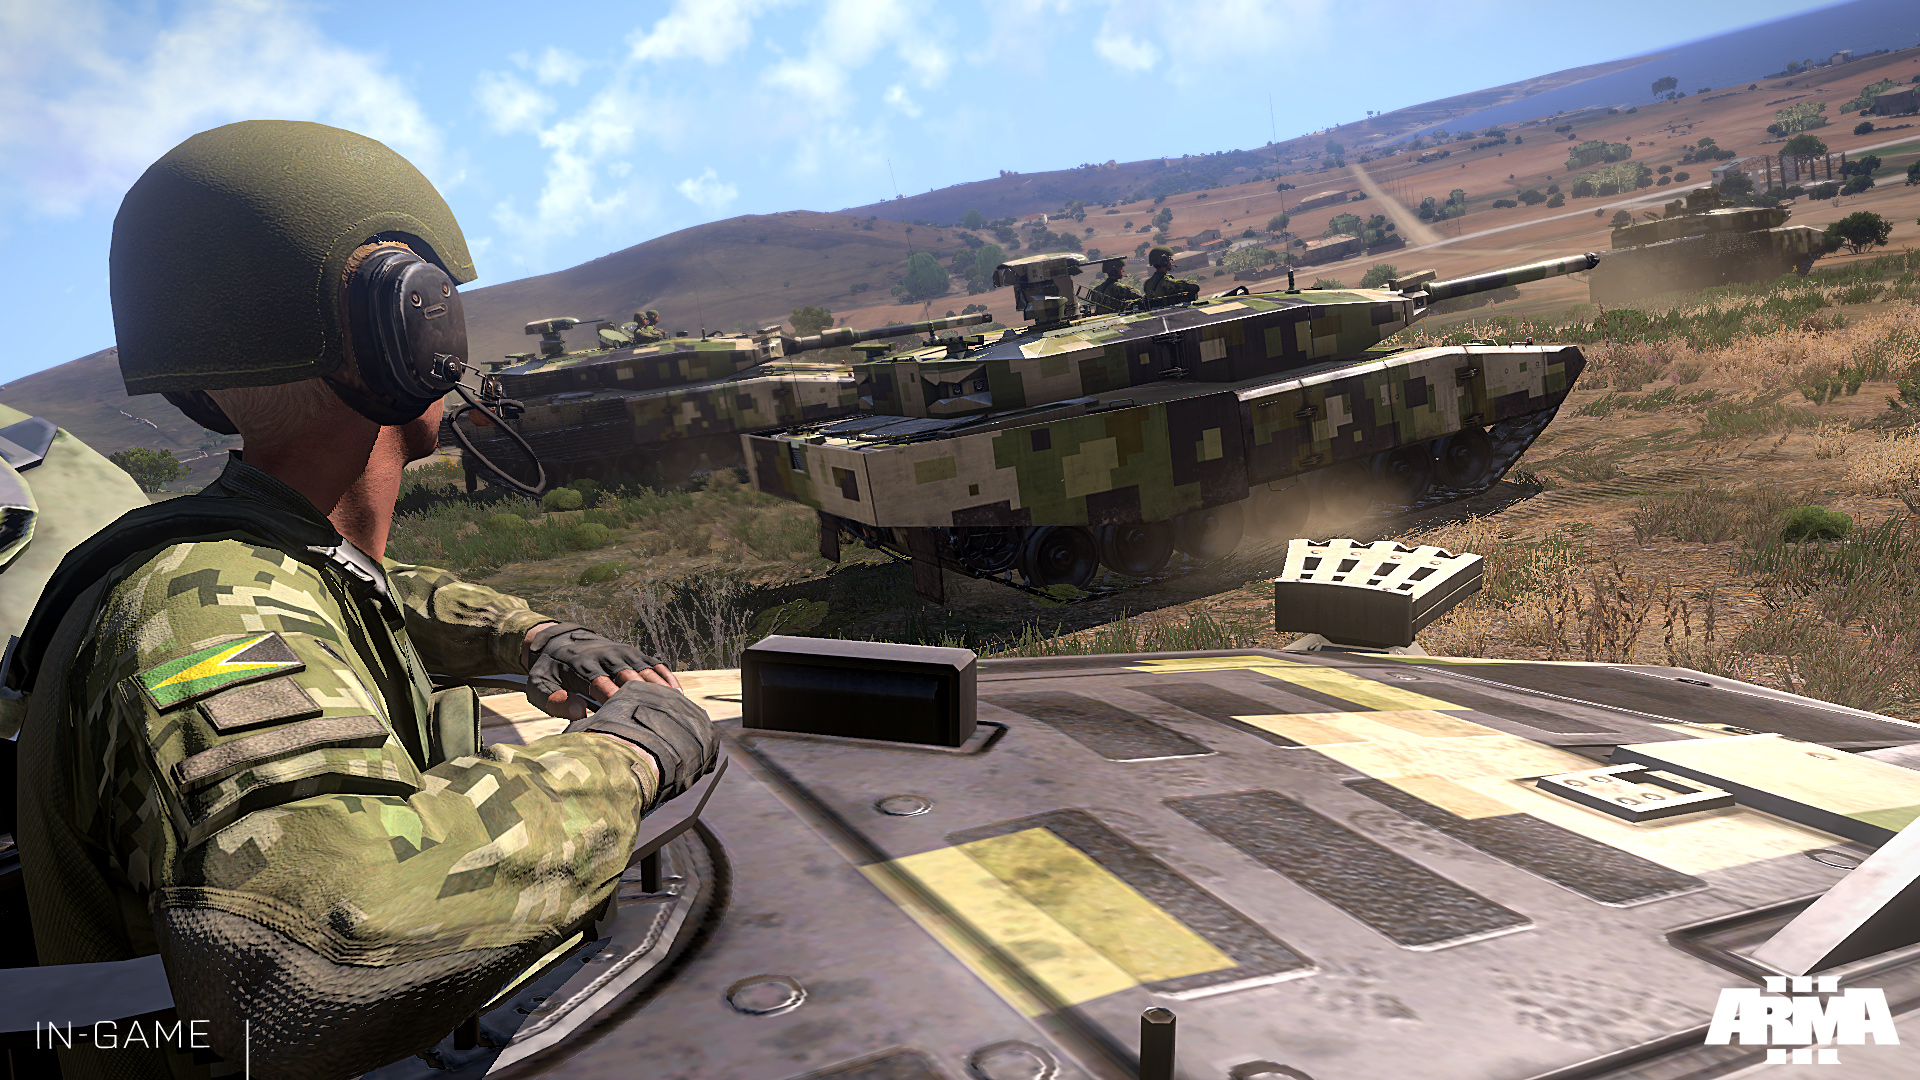 arma3_screenshot01_MBT52tank.jpg